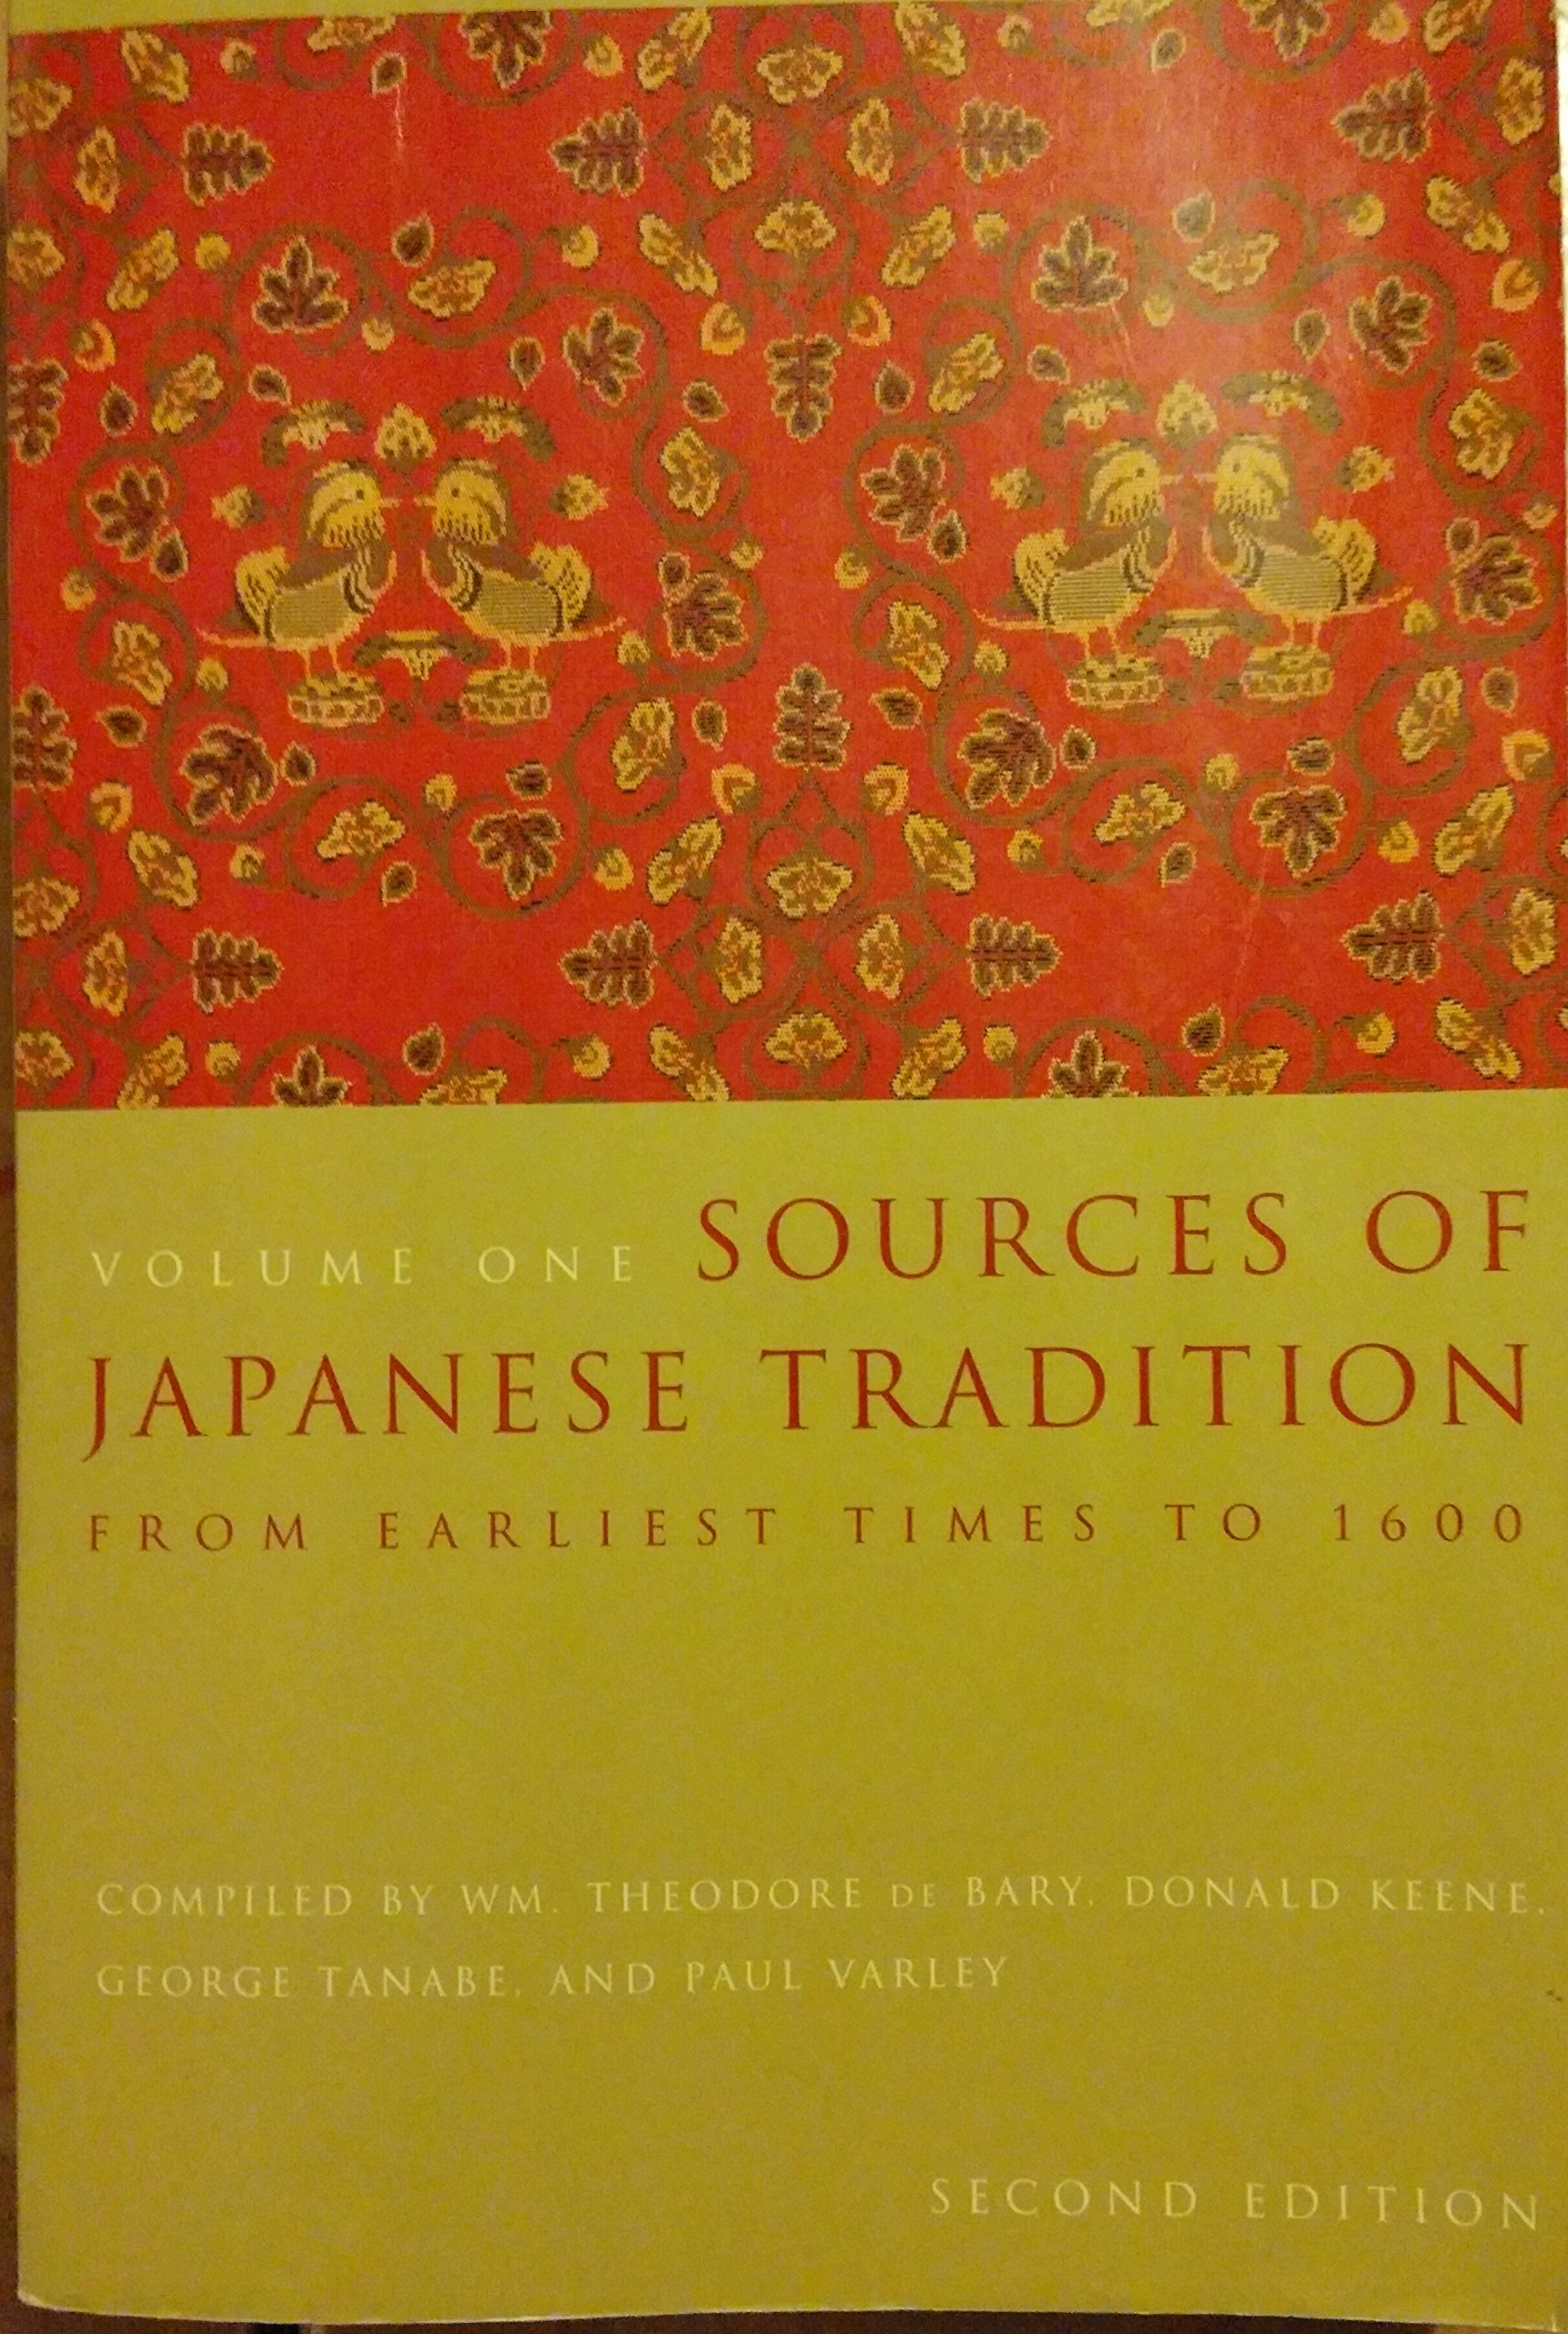 Sources of Japanese Tradition, Volume 1: From Earliest Times to 1600 (2nd edition) pdf